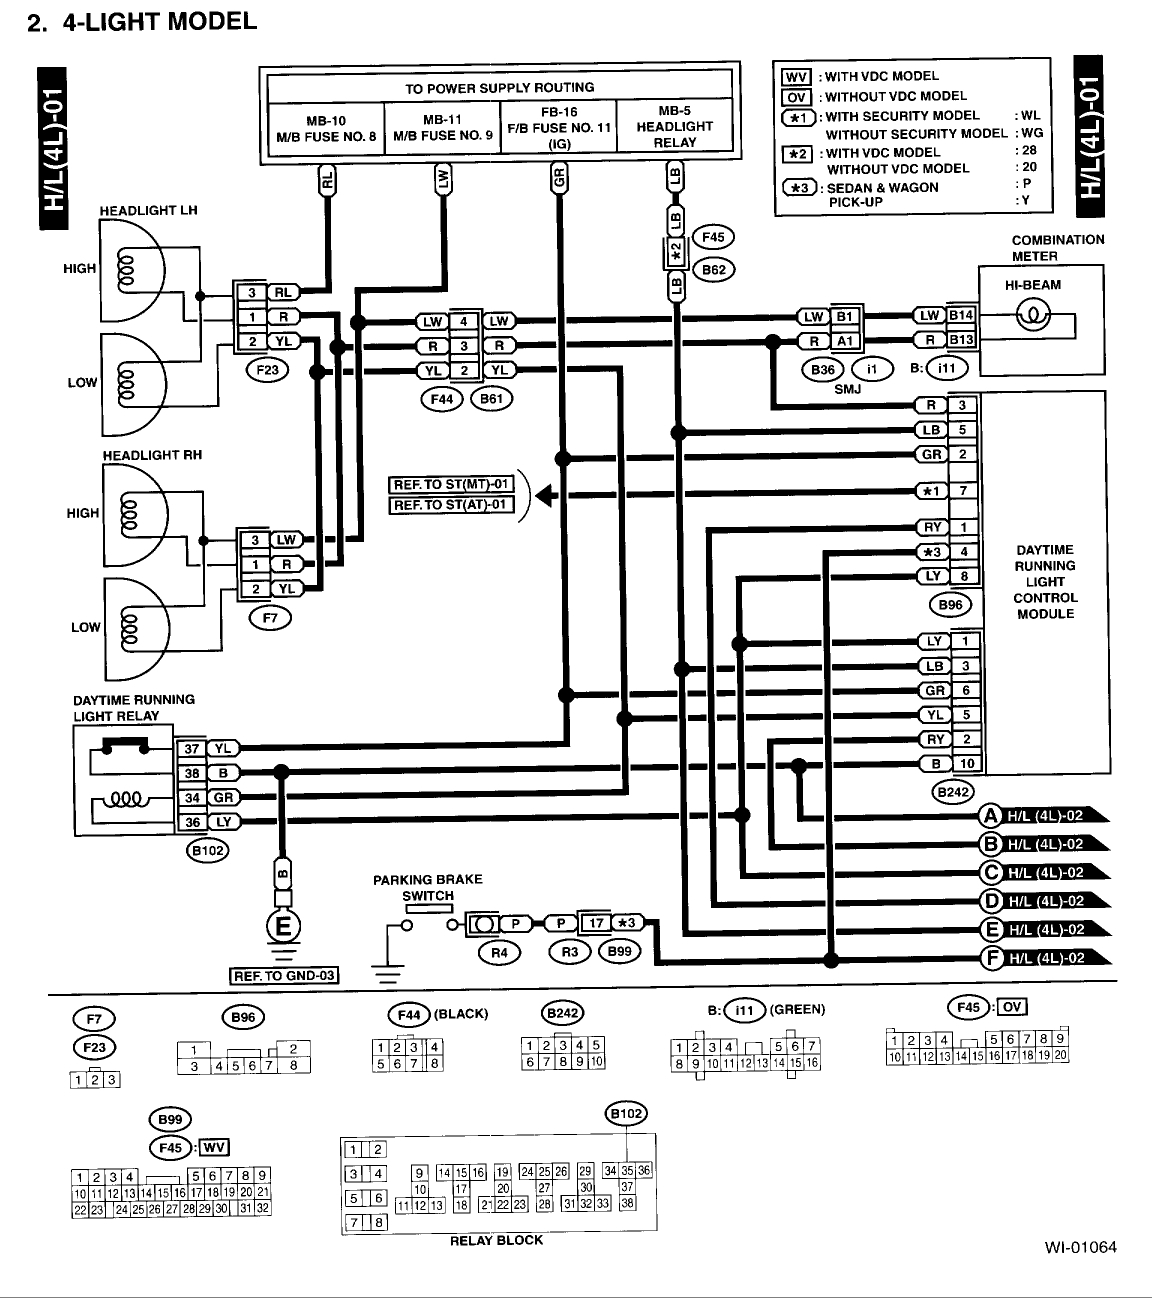 subaru impreza radio wiring diagram discovery 2 headlight 2001 outback gallery